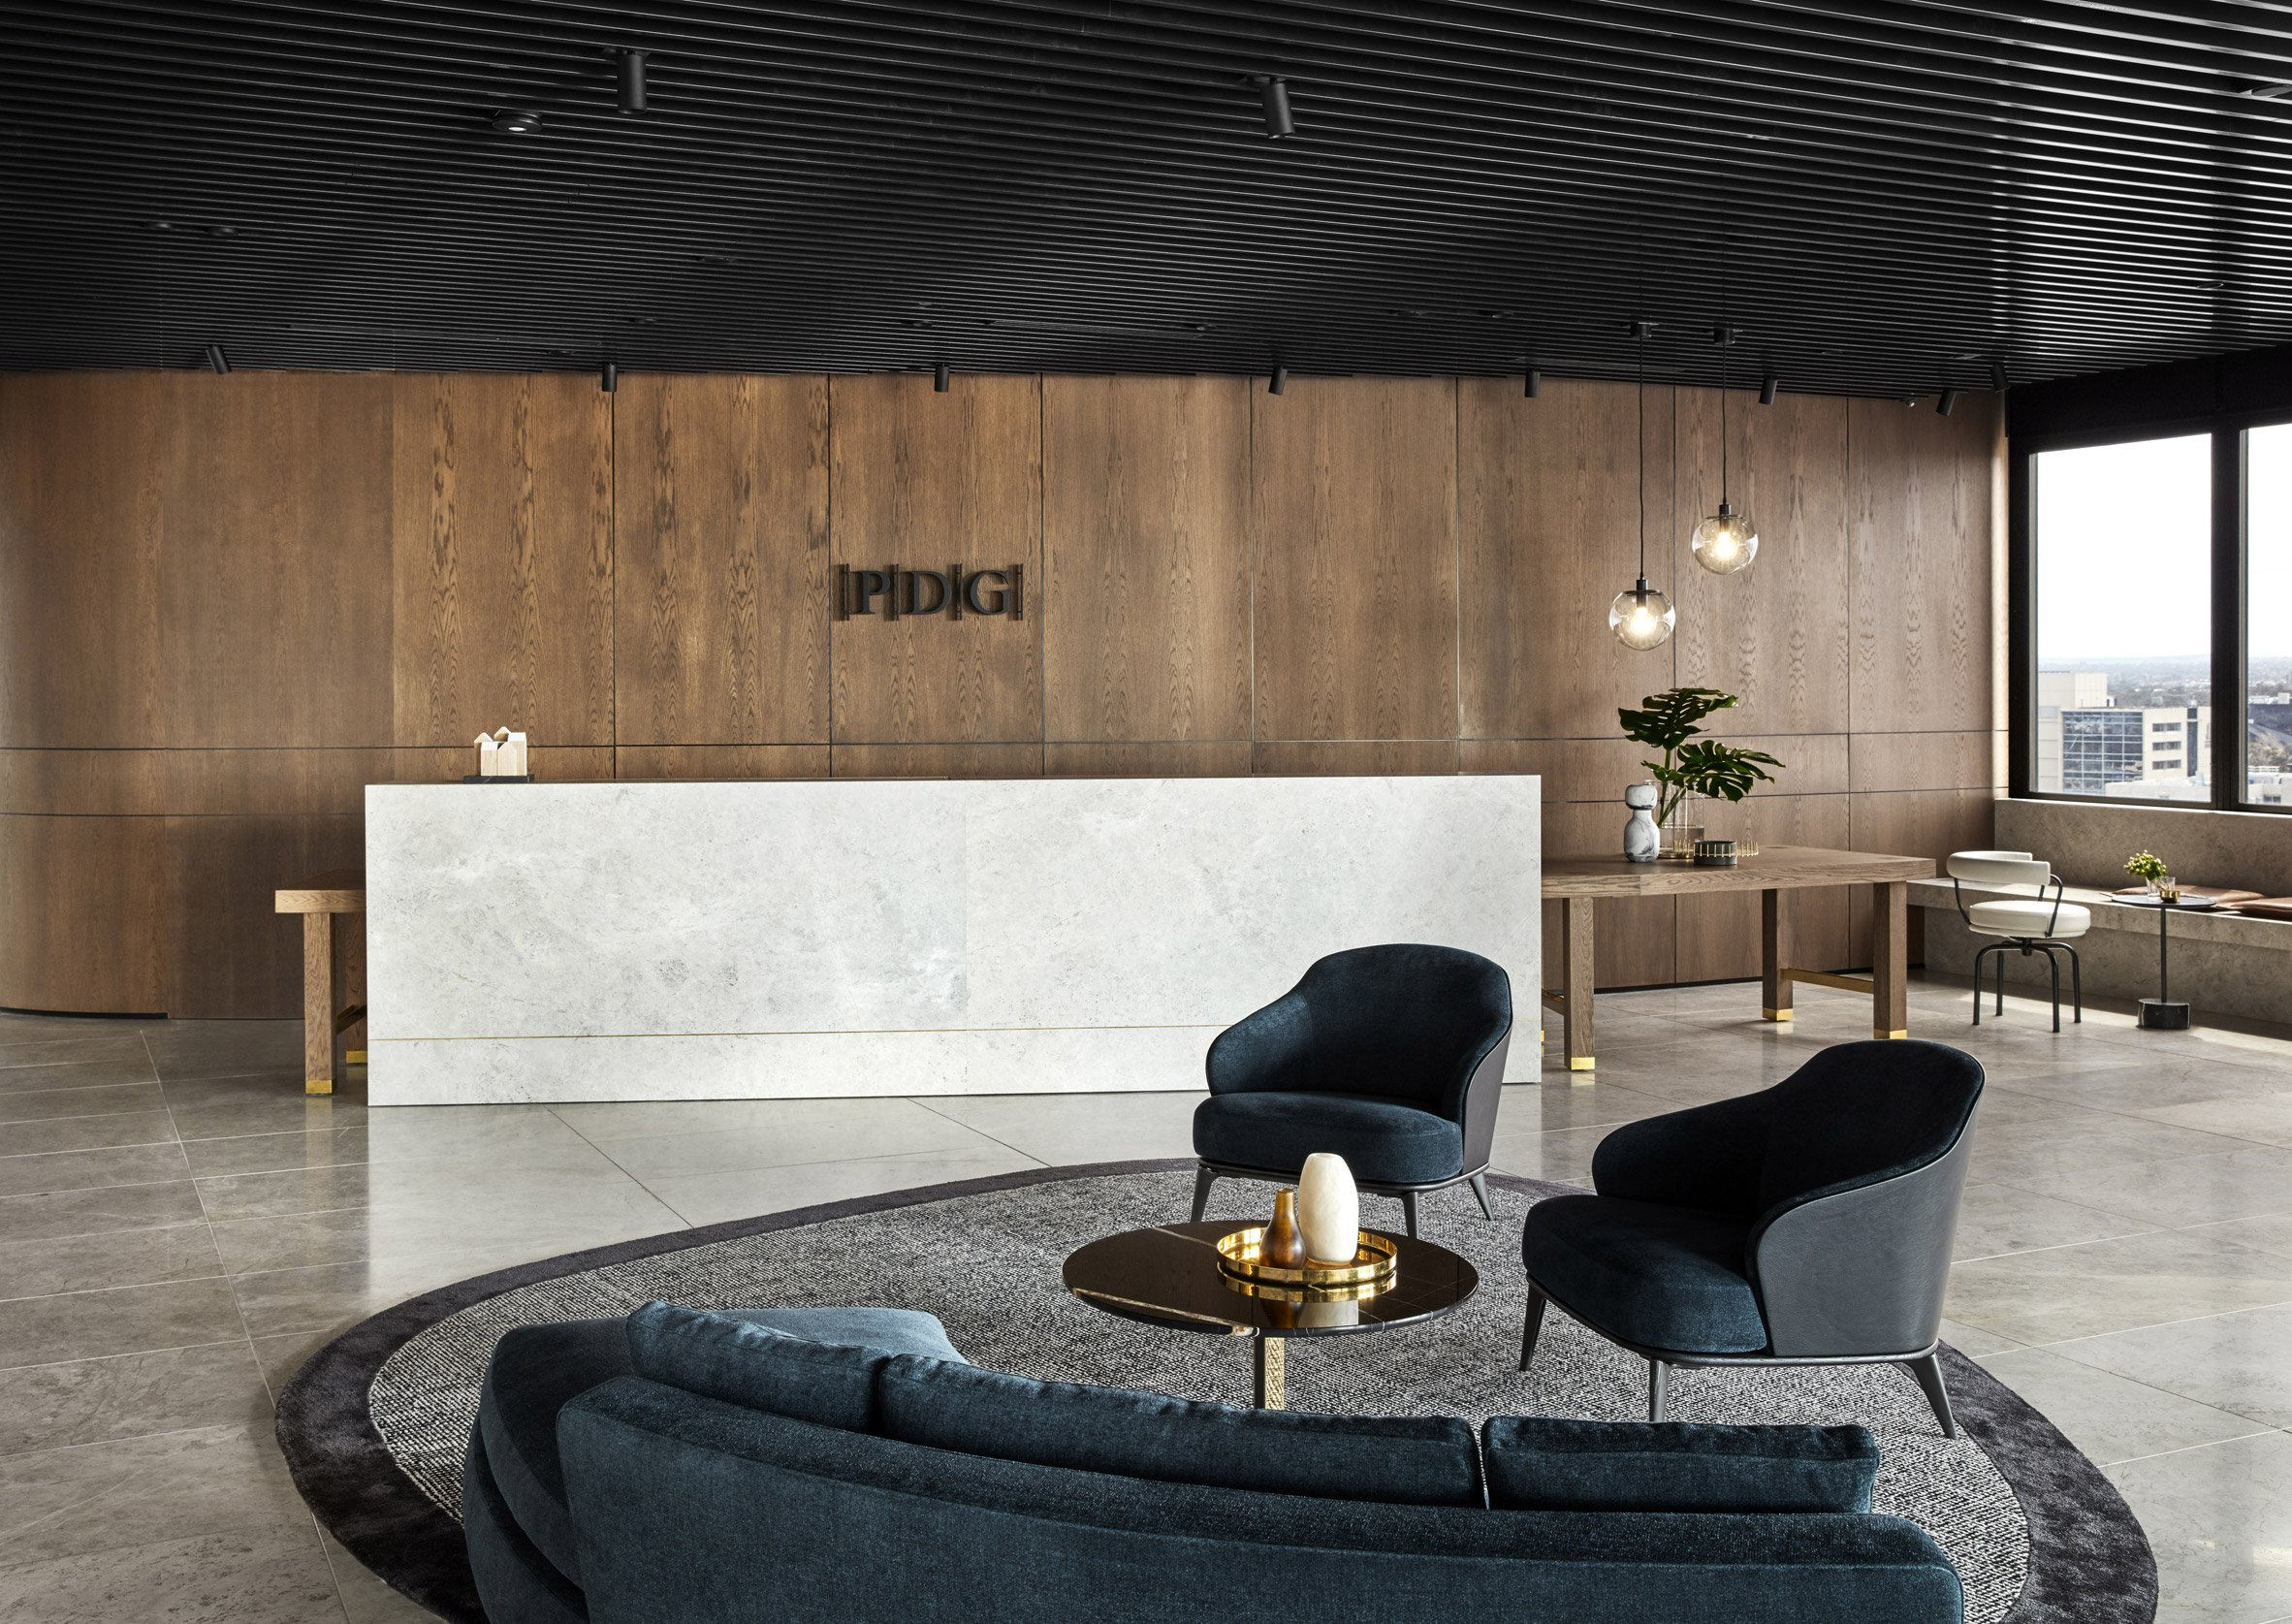 Studio Tate Incorporates Luxurious Details into PDG's Workspace studio tate Studio Tate Incorporates Luxurious Details into PDG's Melbourne Office Studio Tate Incorporates Luxurious Details into PDGs Workspace 2